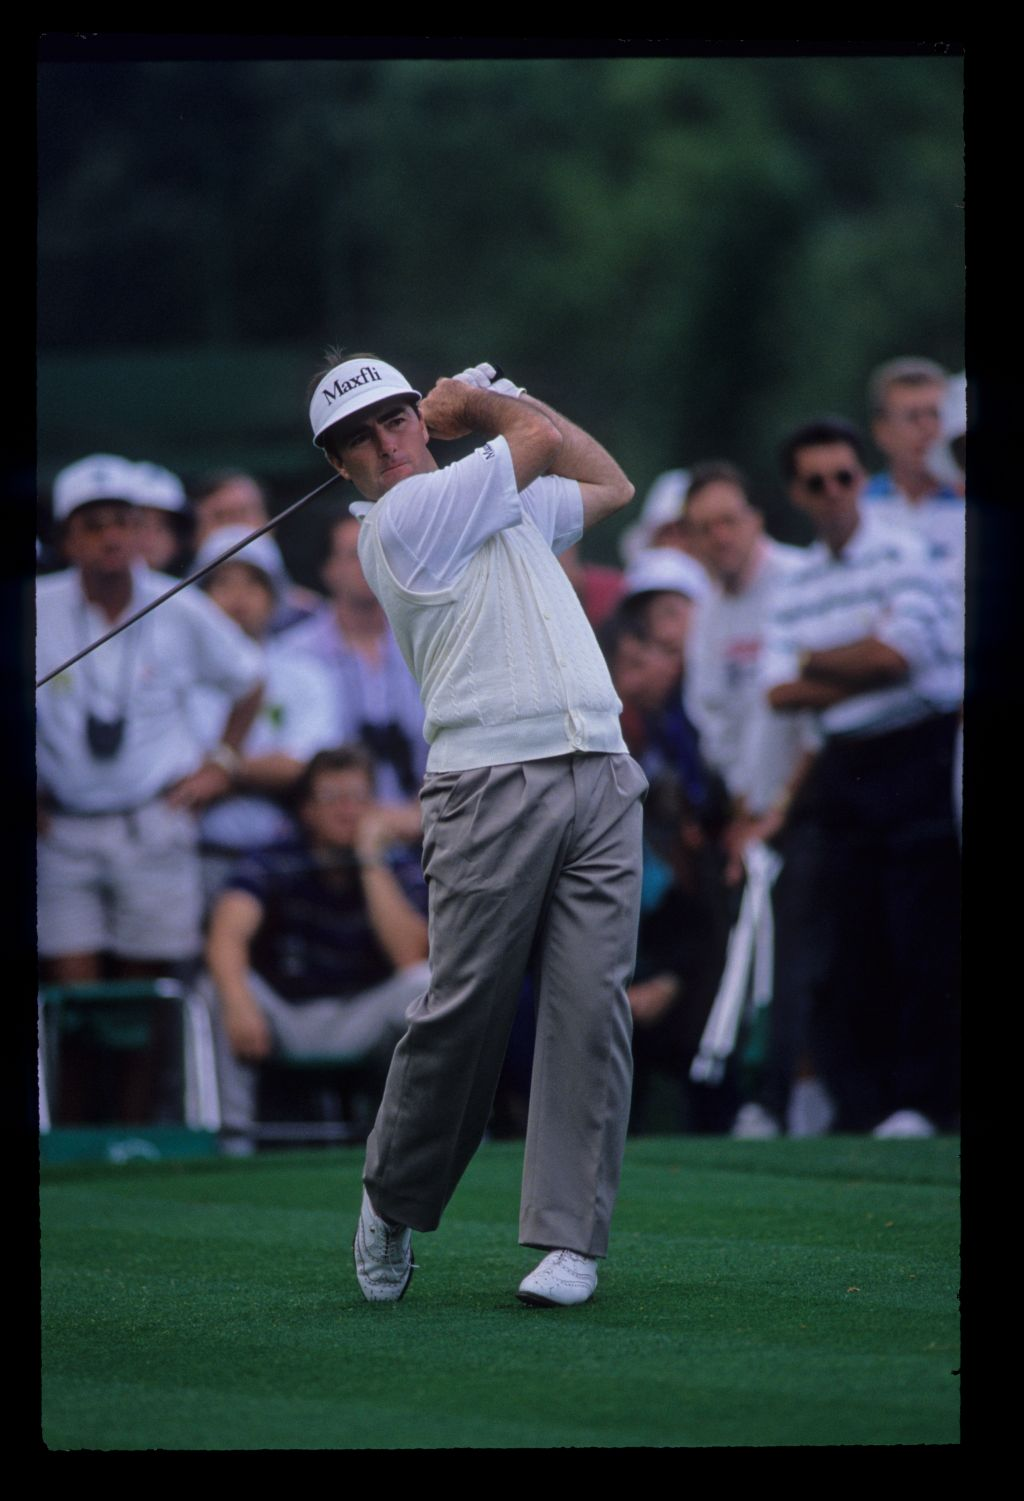 Craig Parry following through on the tee during the 1992 Masters